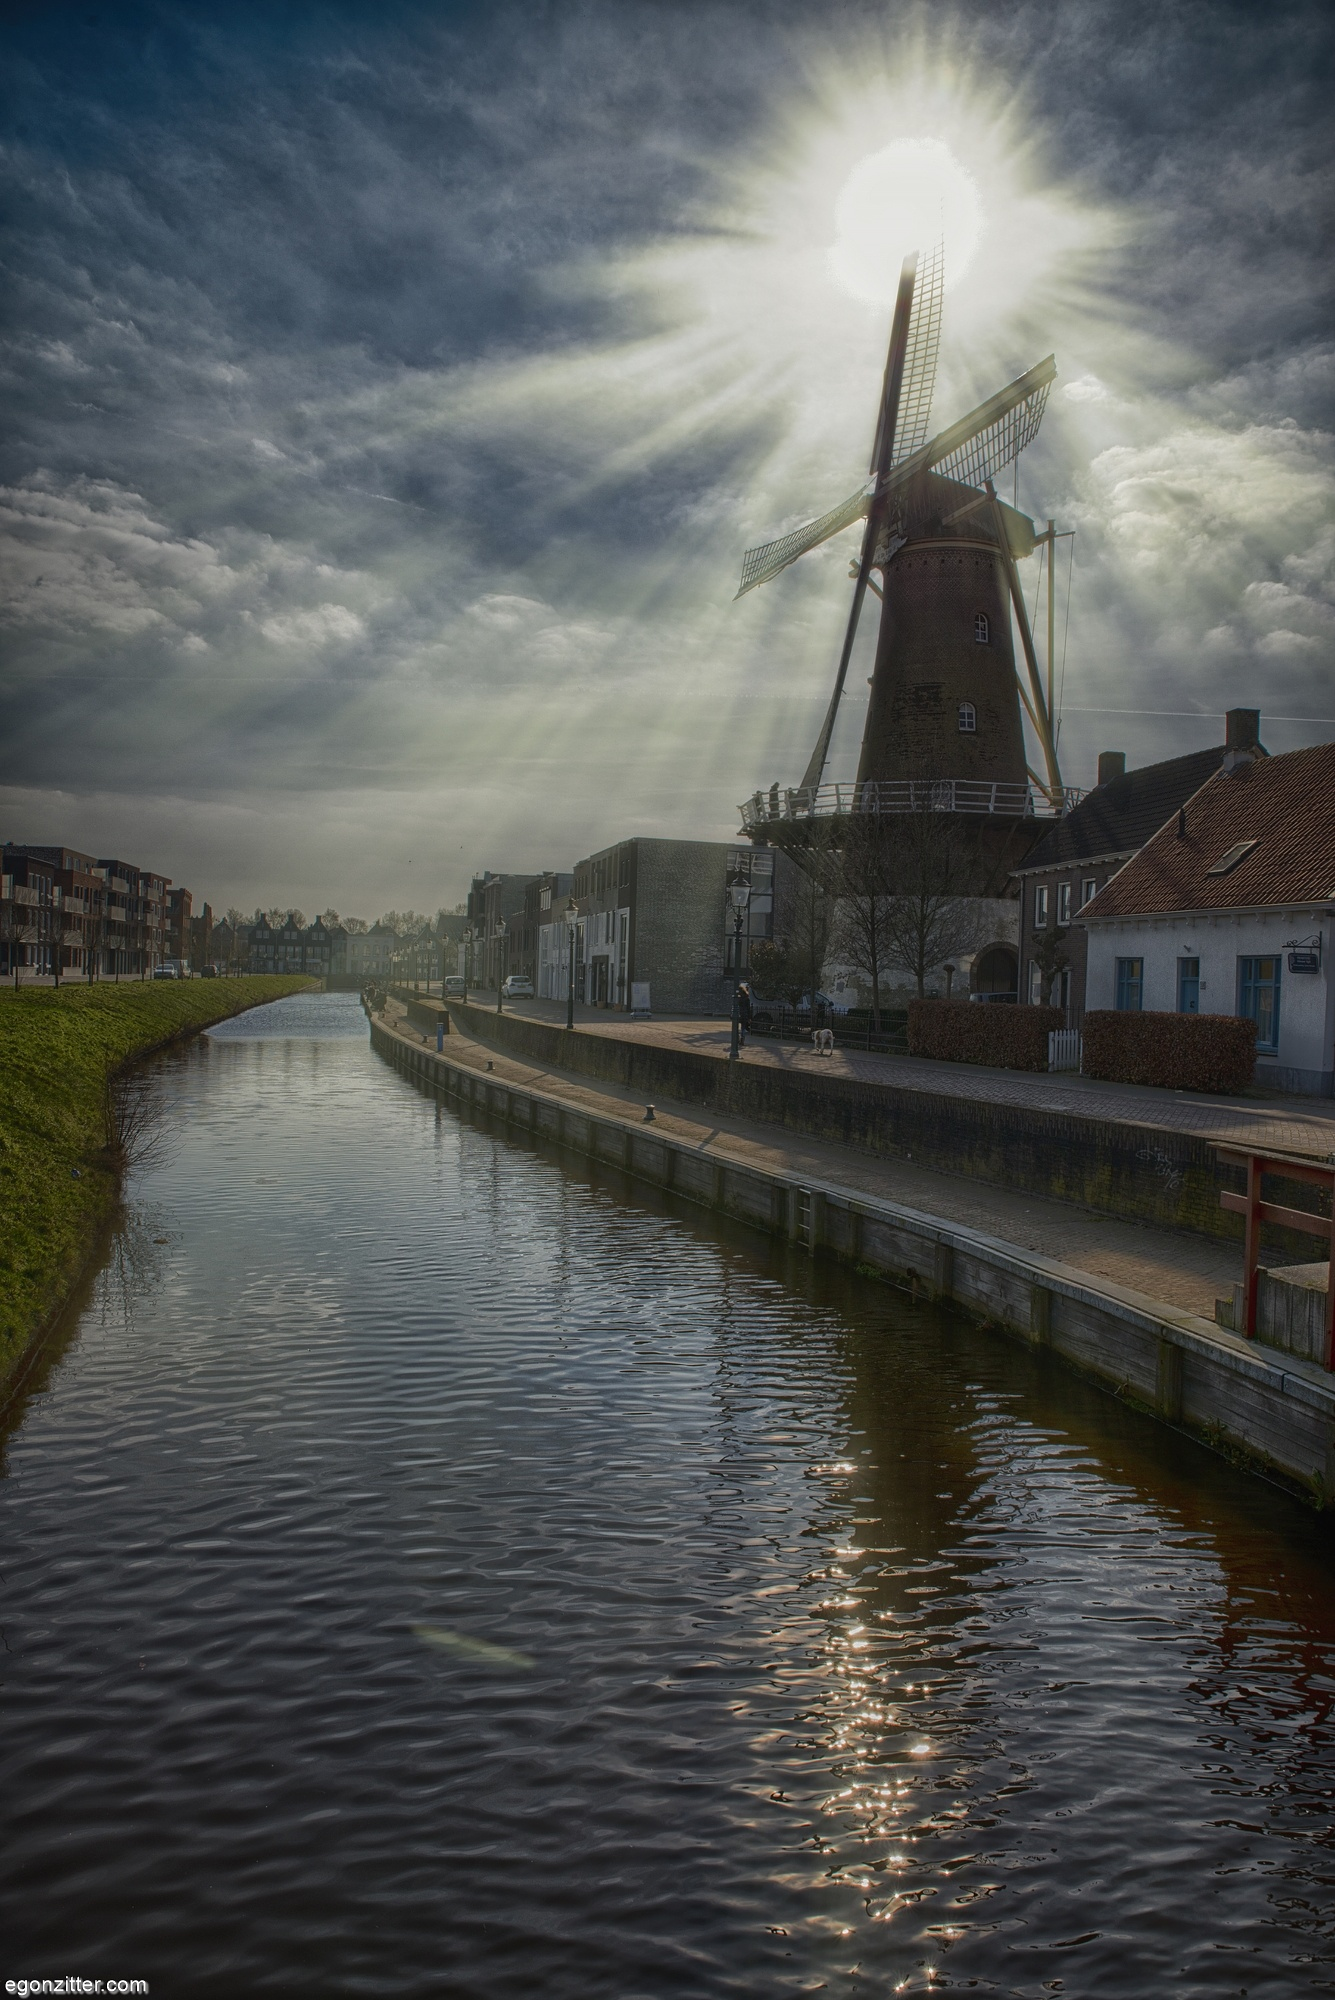 Windmill along the river by egonzitter